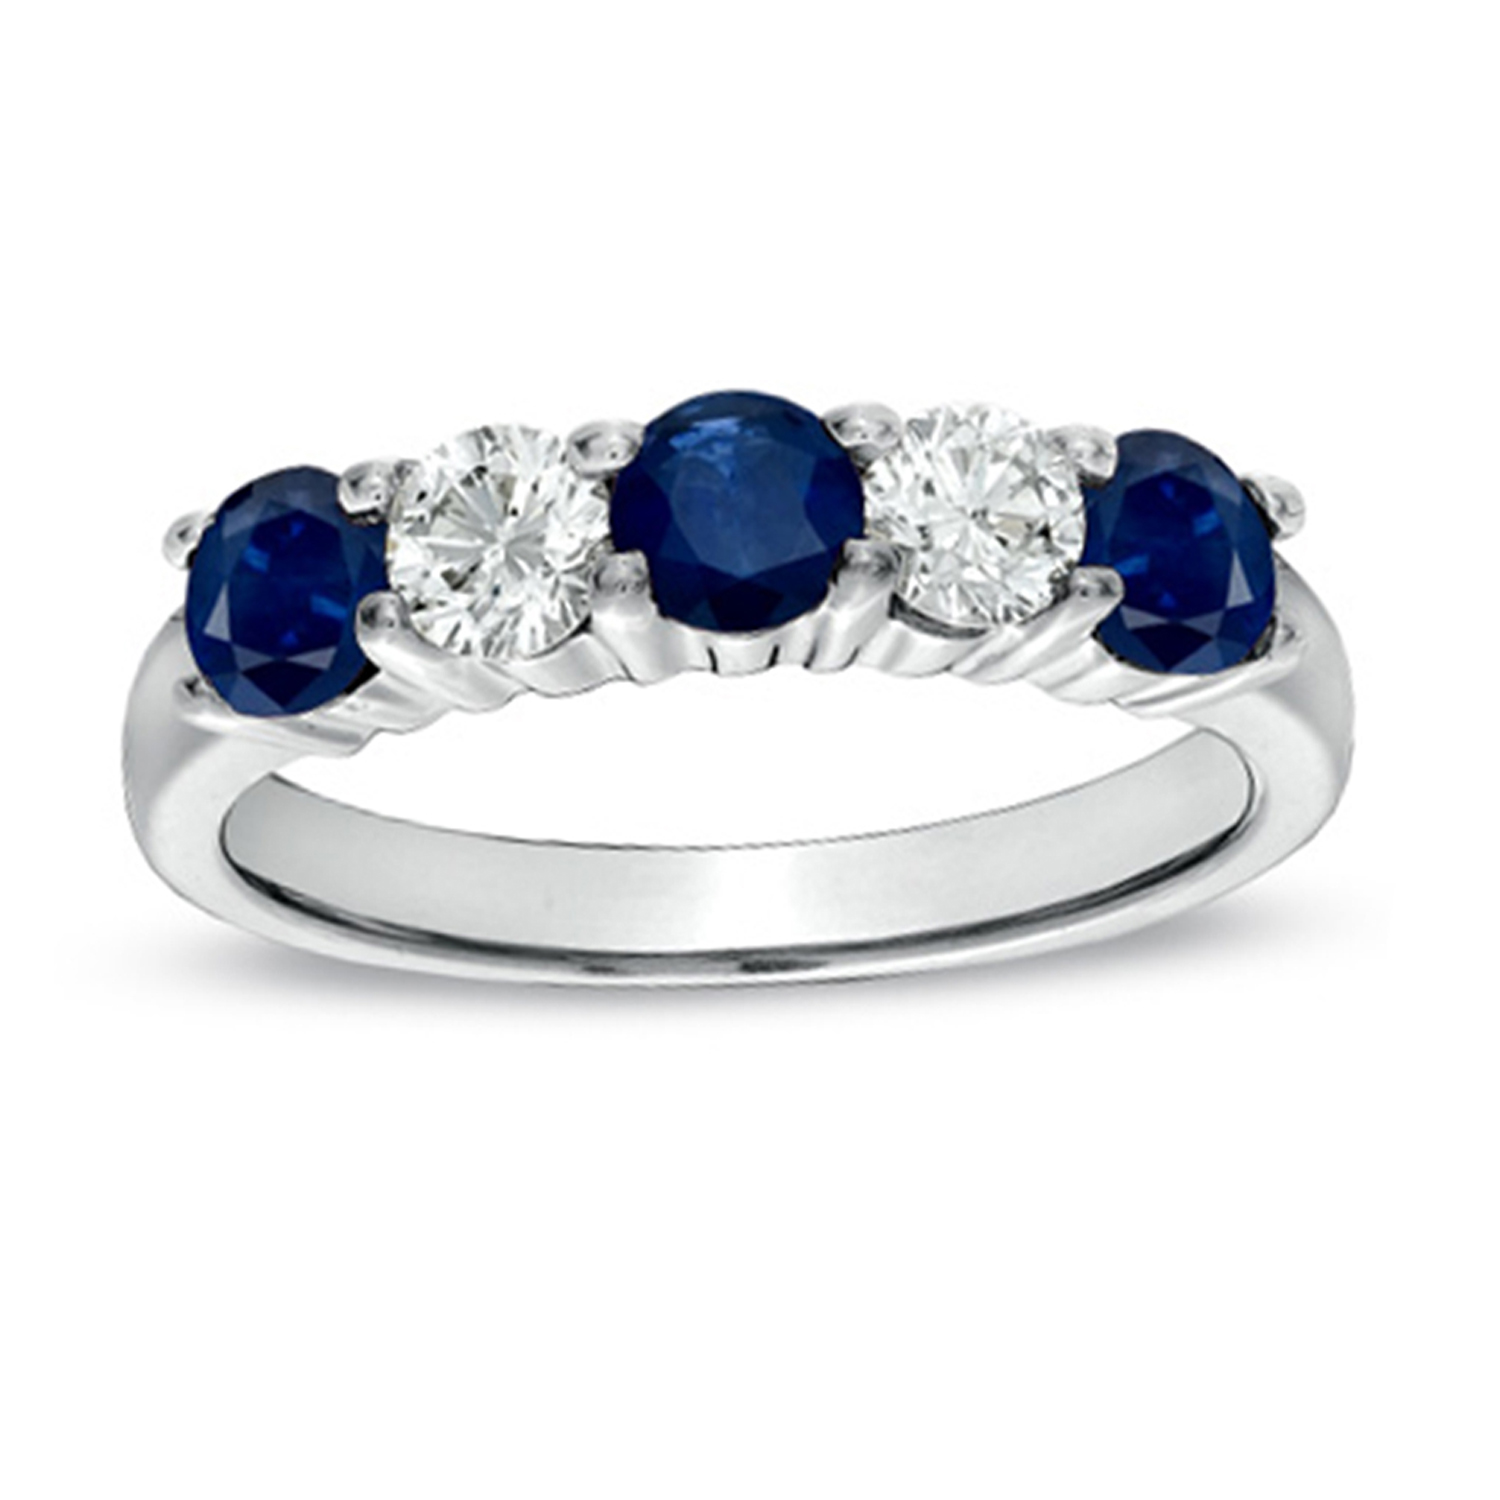 View 1.26cttw Sapphire and Diamond Ring set in 14k Gold